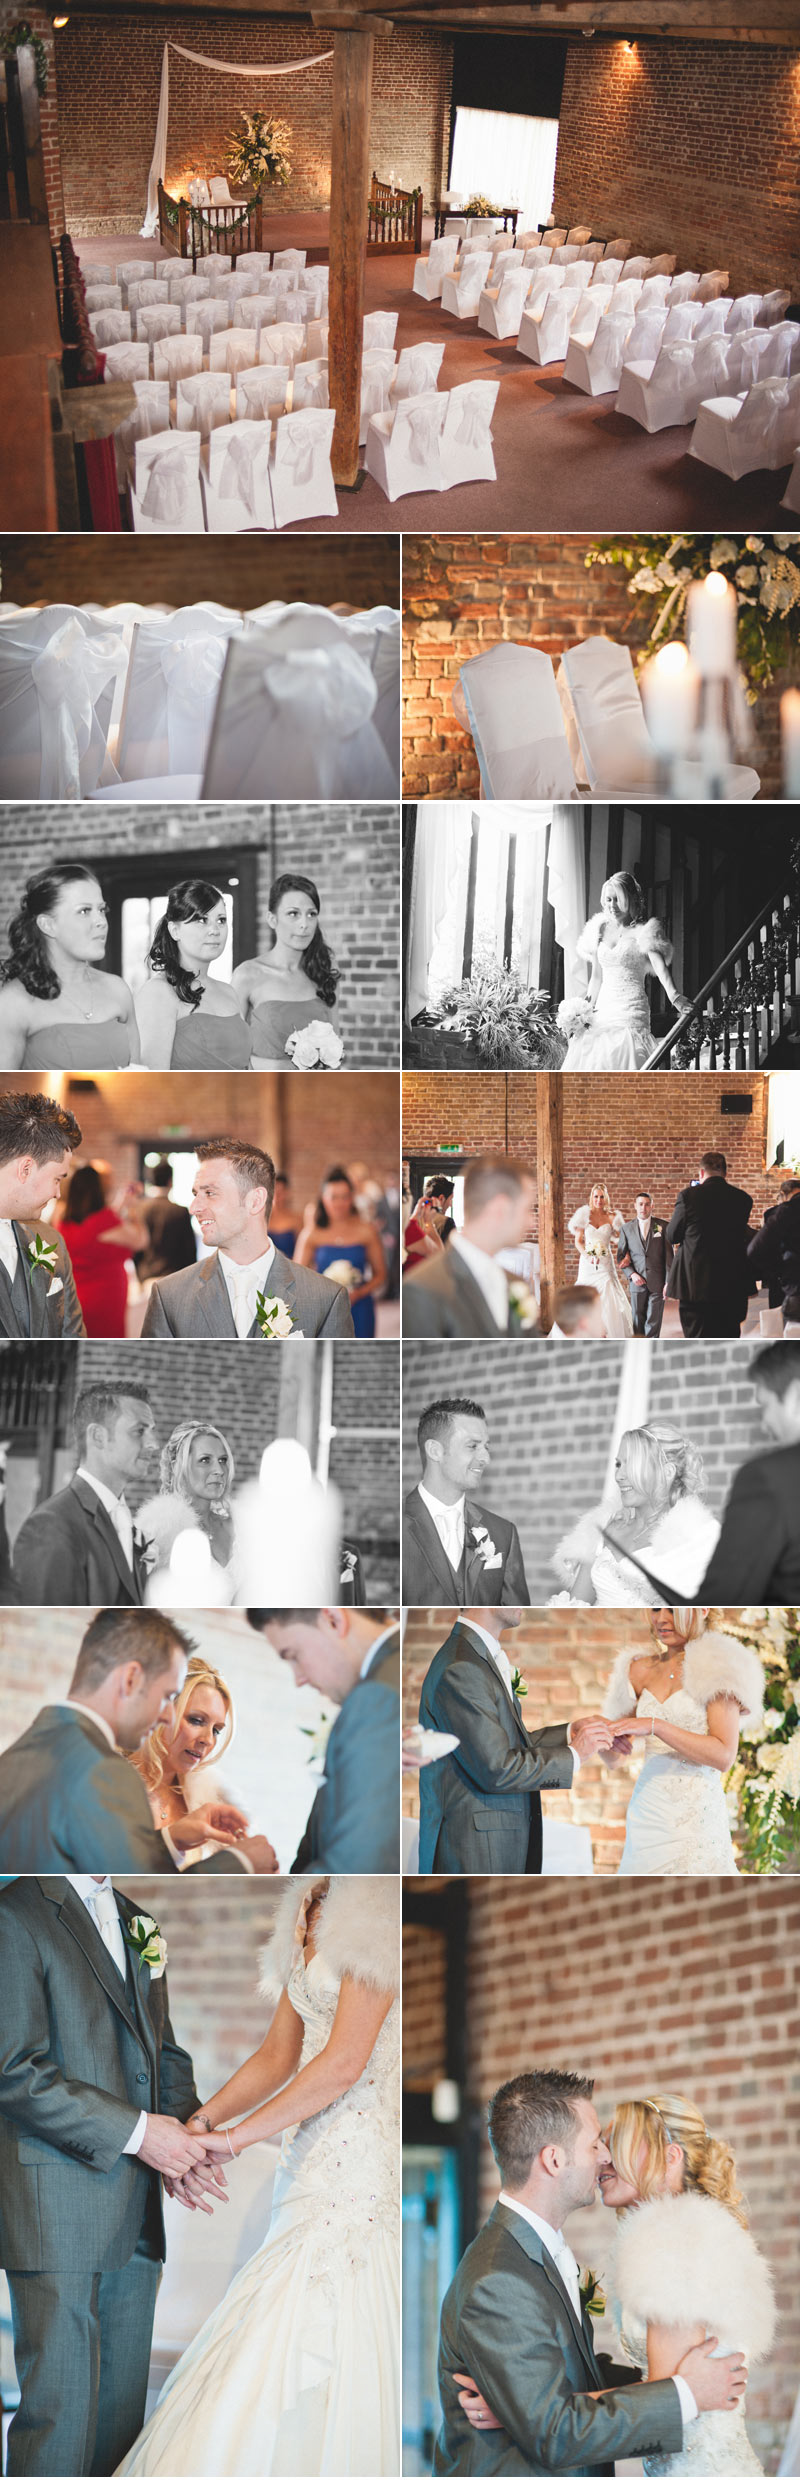 Lisa-&-Alan-{-Cooling-Castle-Barn-Wedding-Photography-}